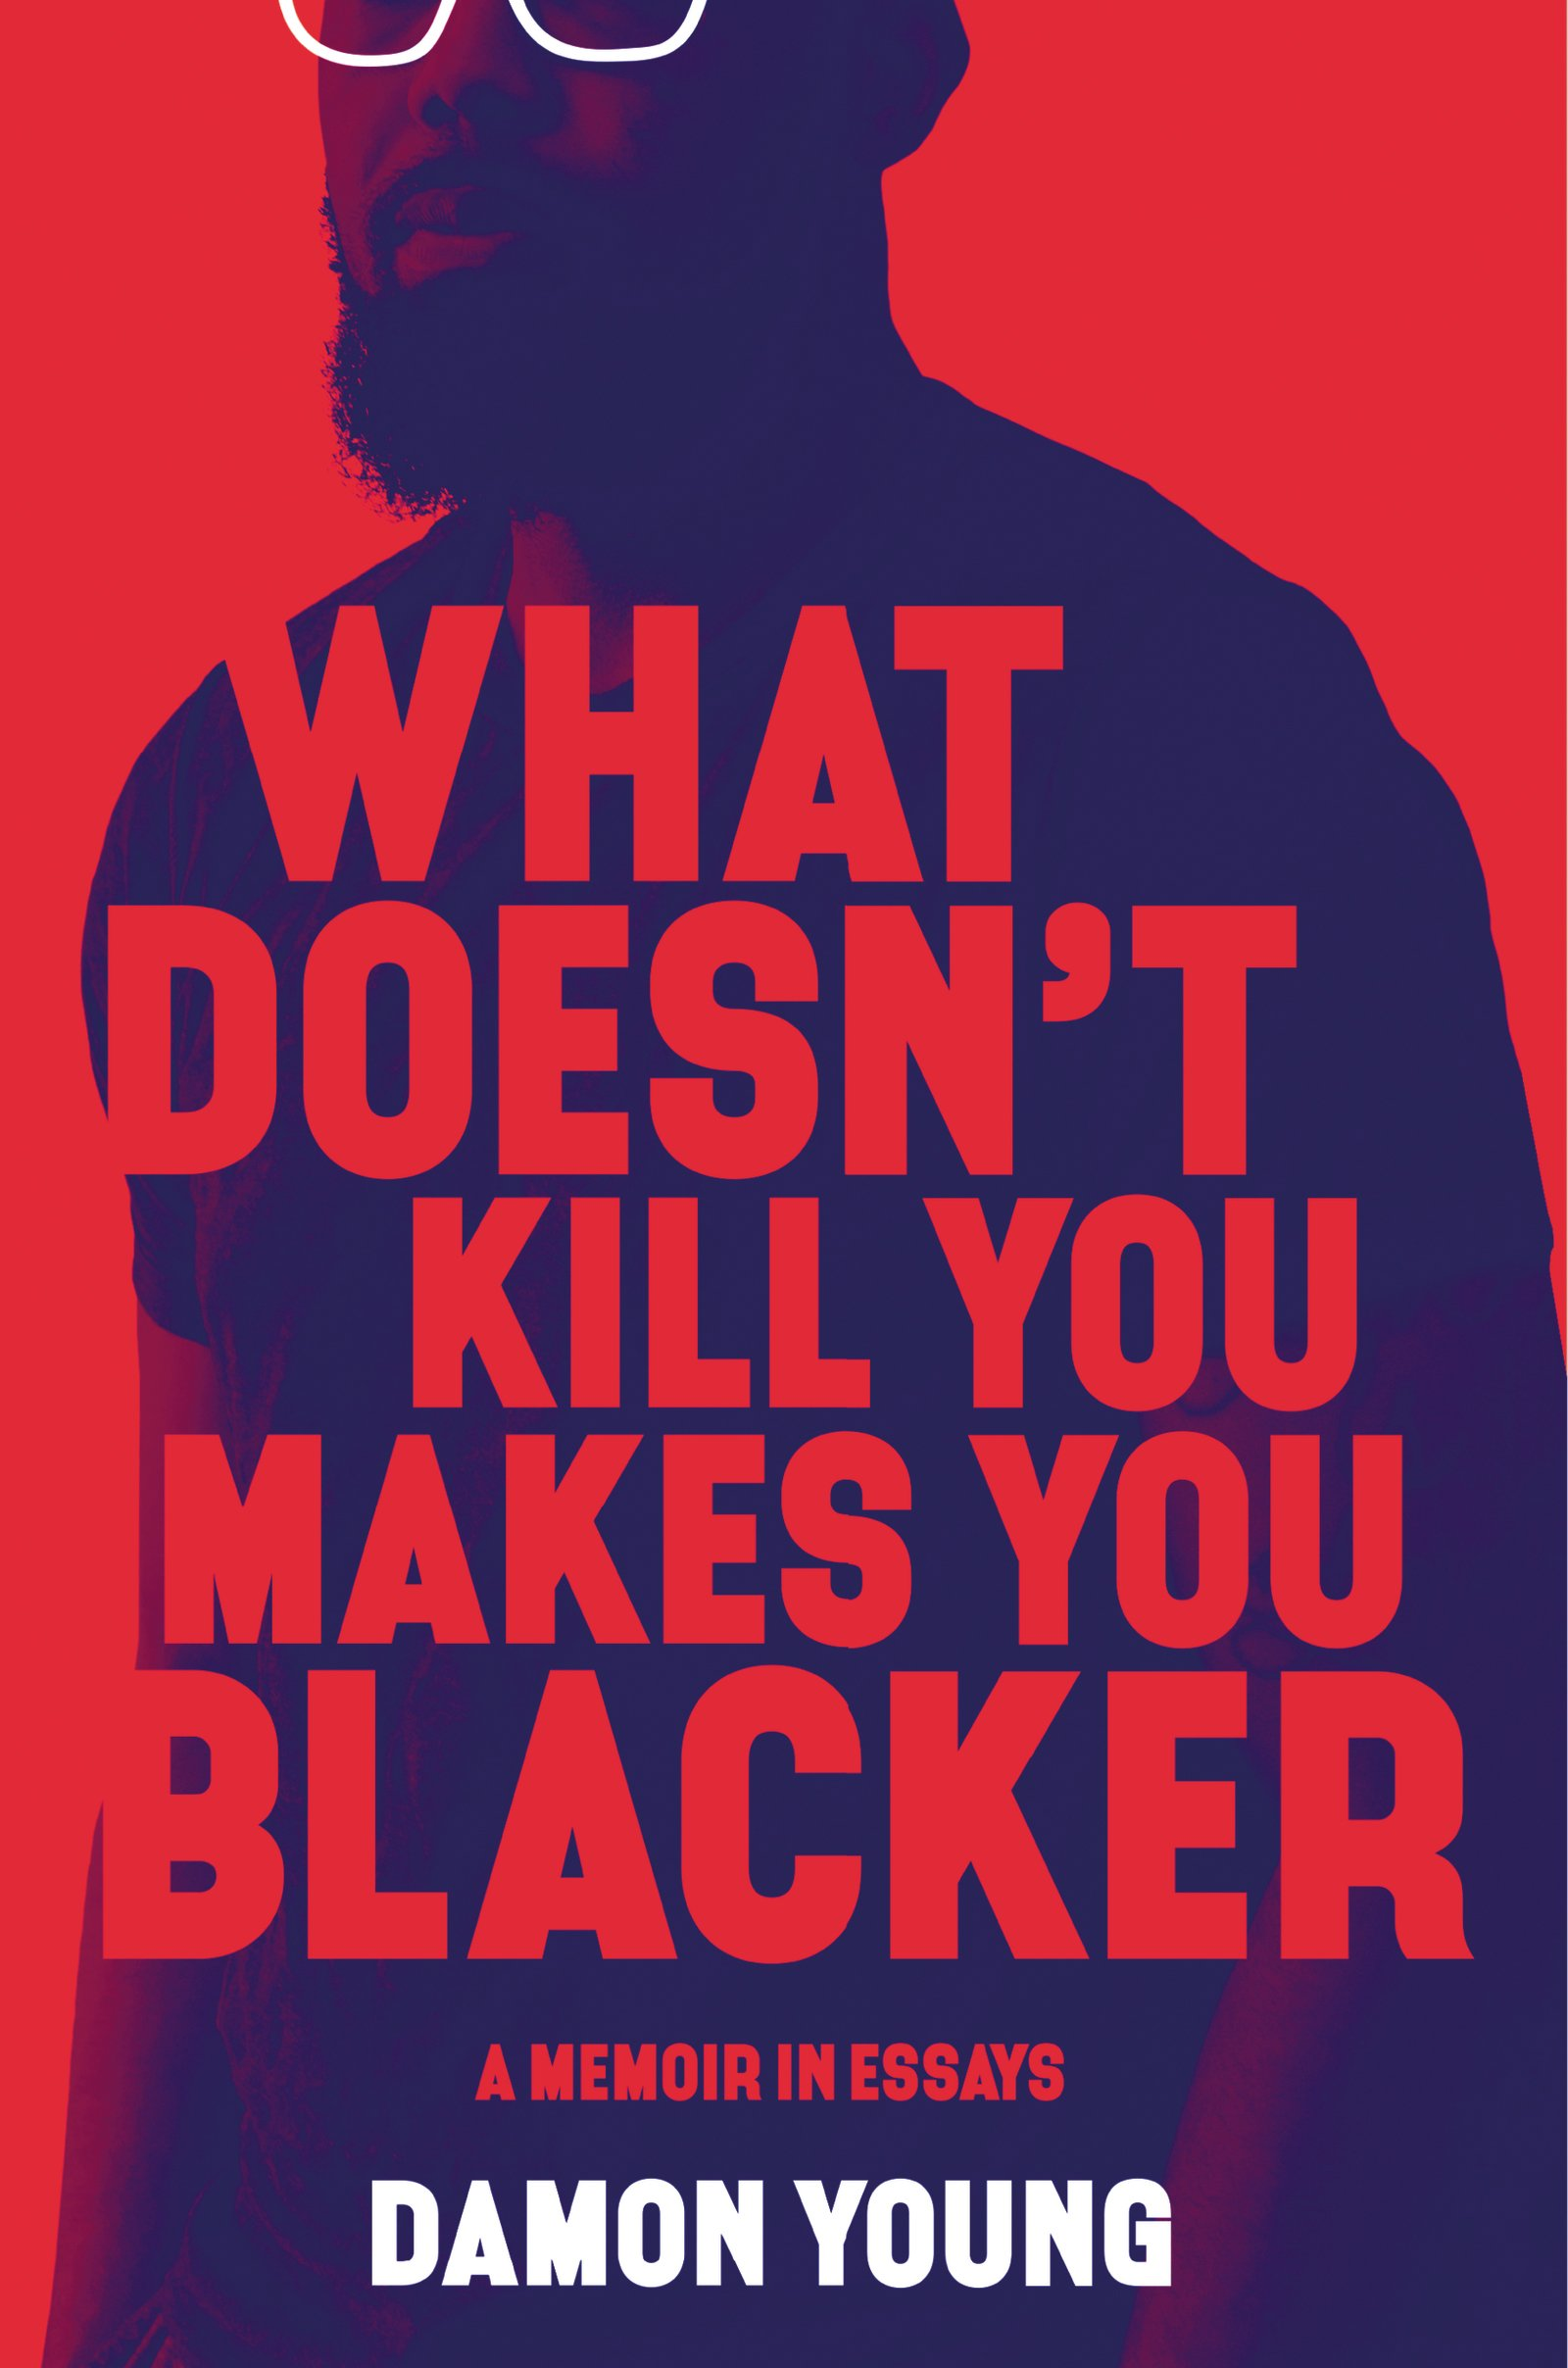 Image result for what doesn't kill you makes you blacker book""